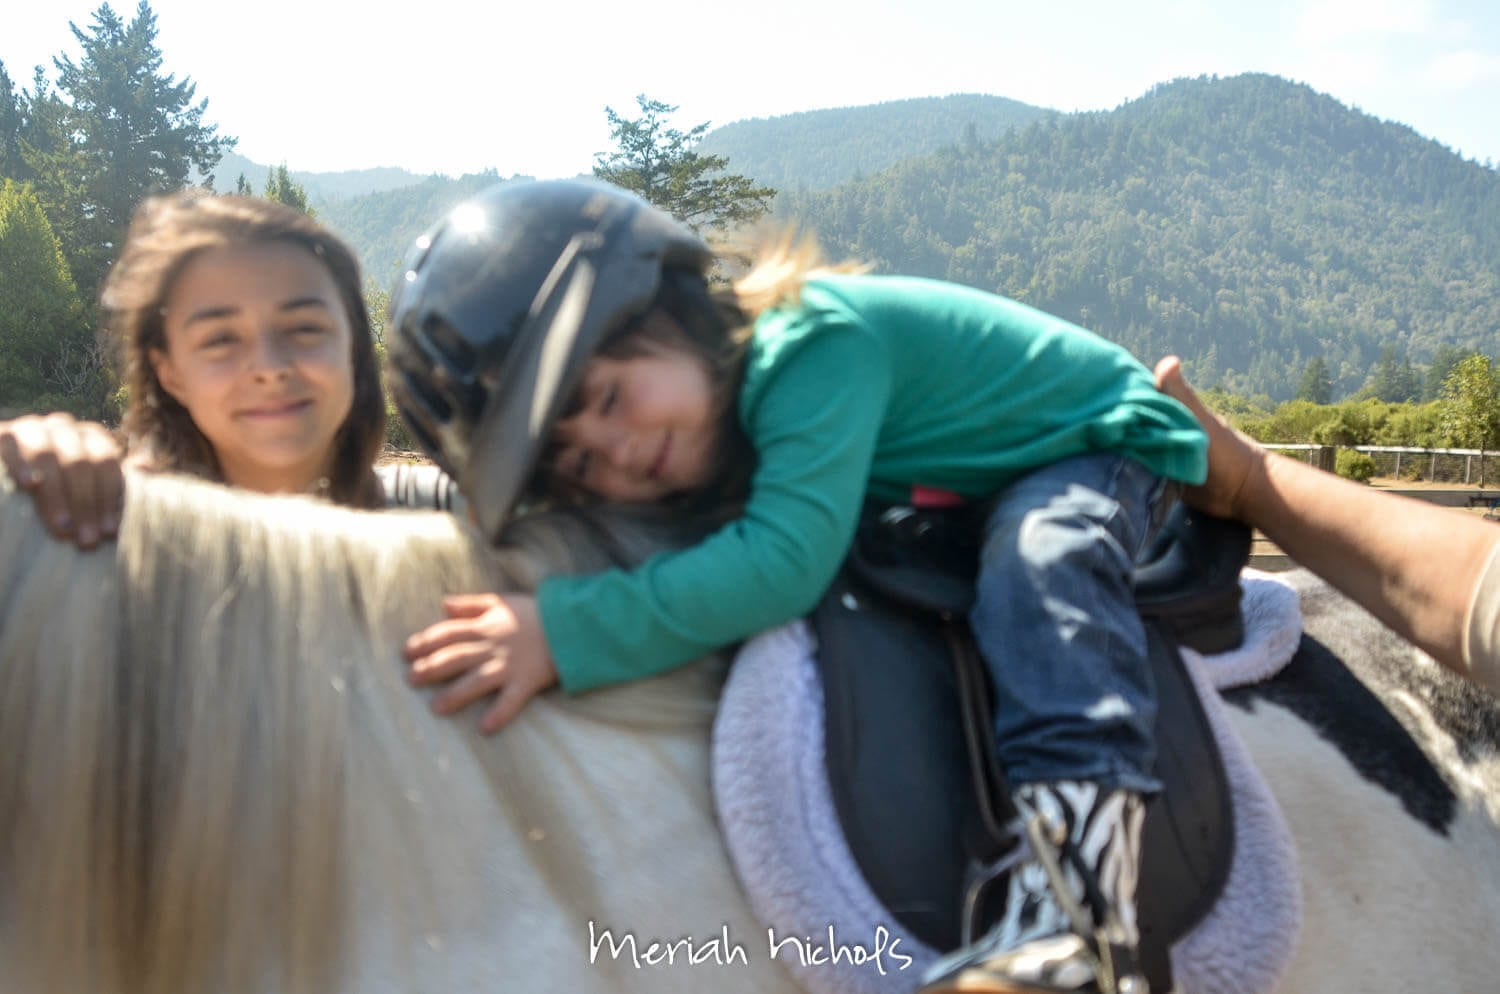 Horse Therapy and Down syndrome?!